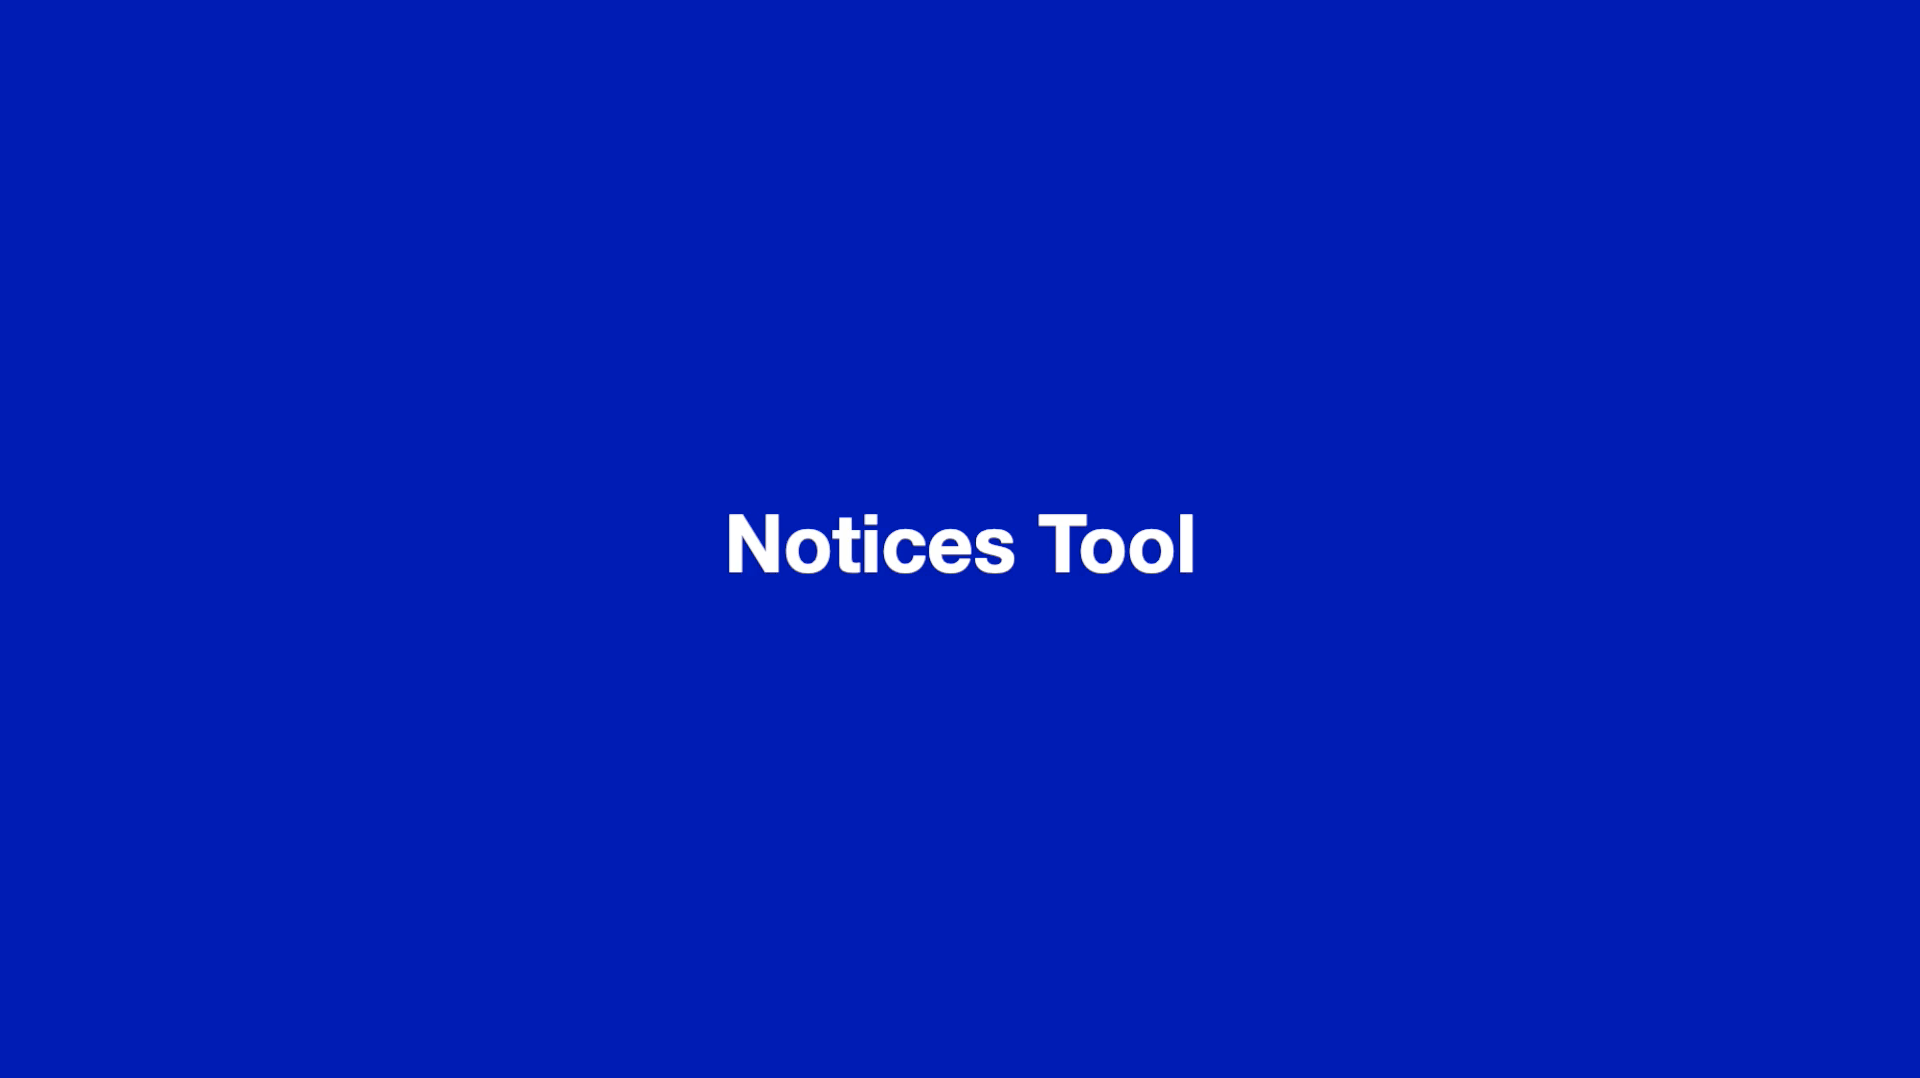 Notices Tool